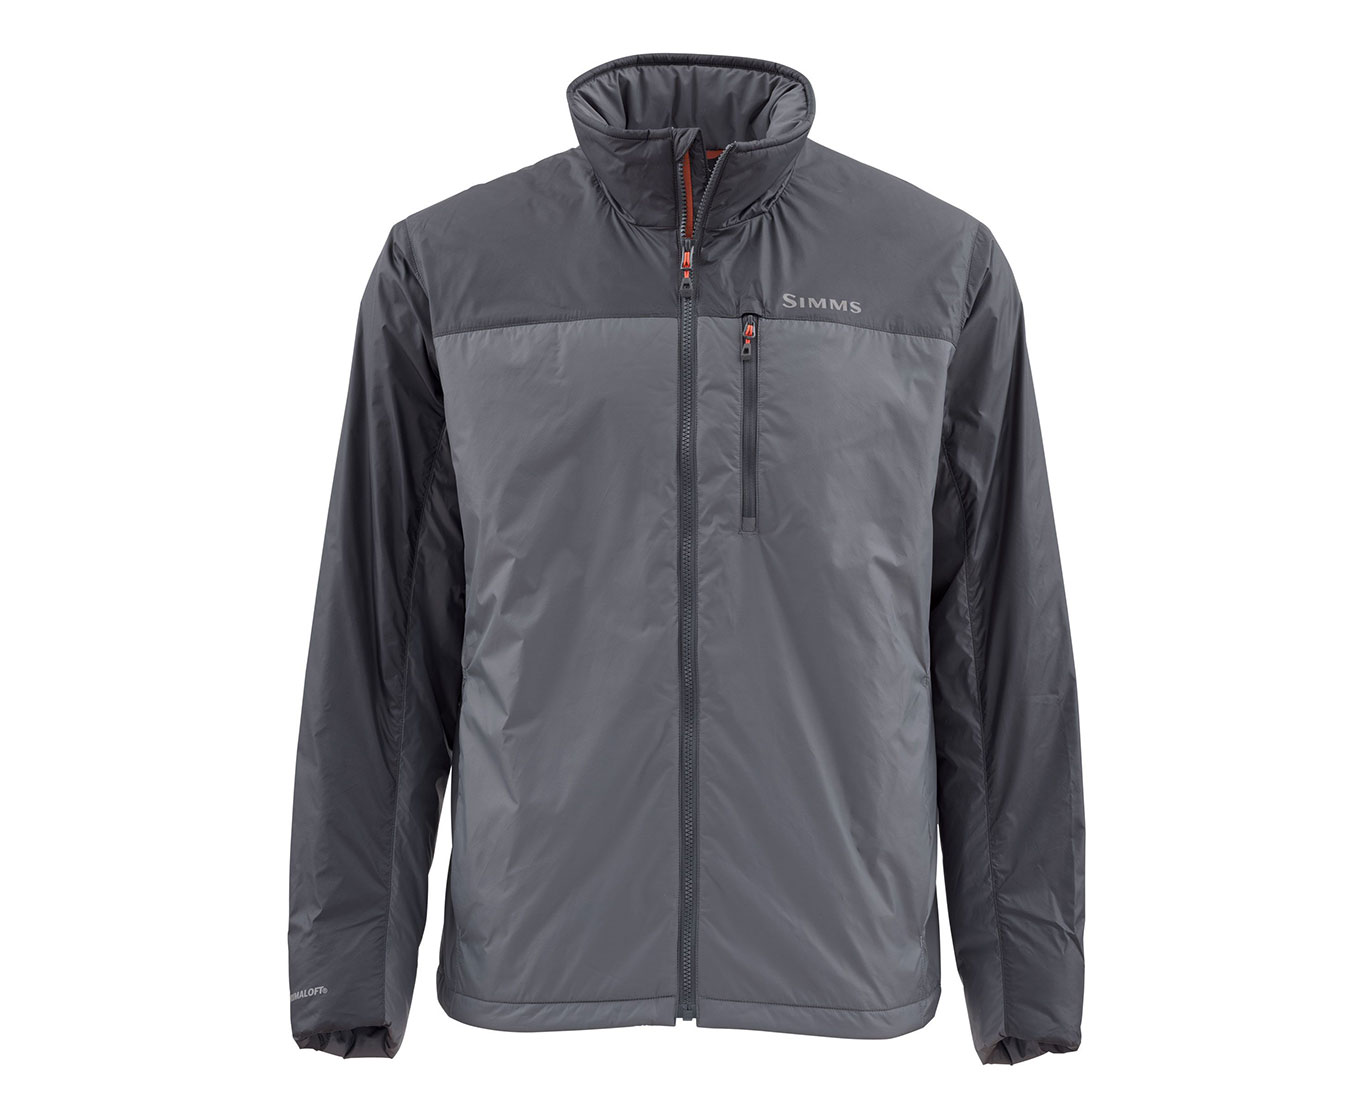 Simms Midstream Insulated Jacket - Anvil